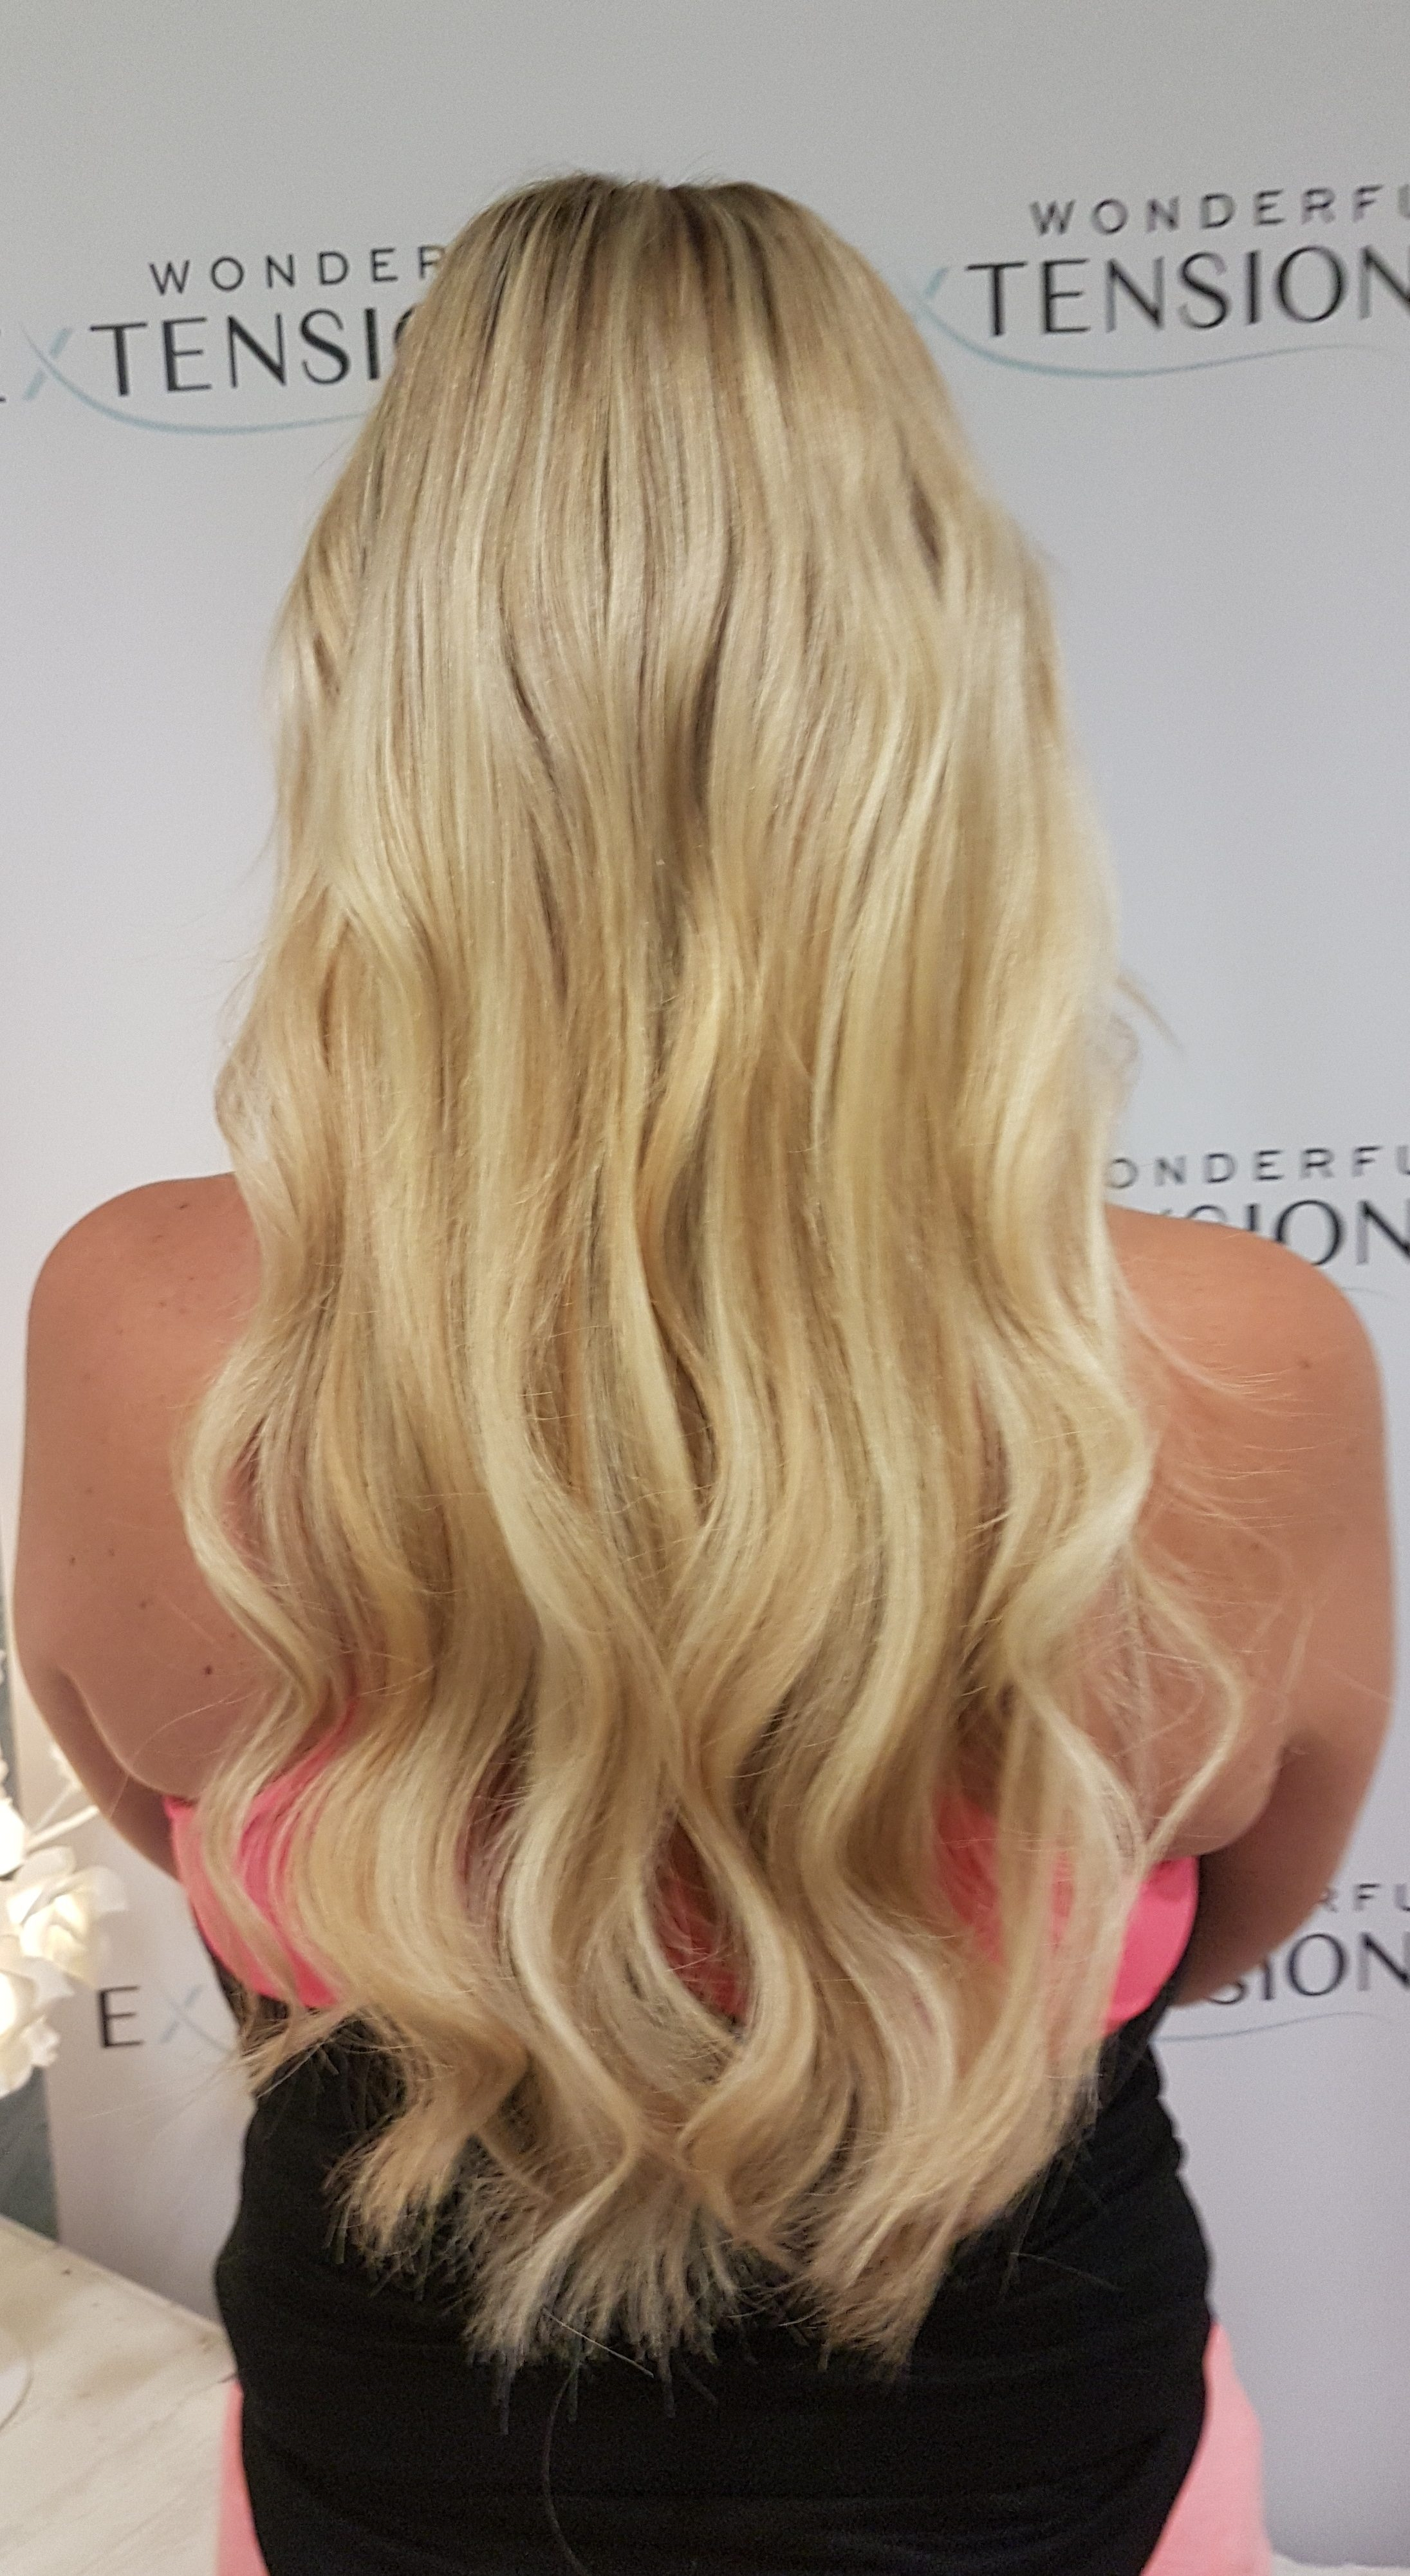 Hair Extensions London - Curly Blond